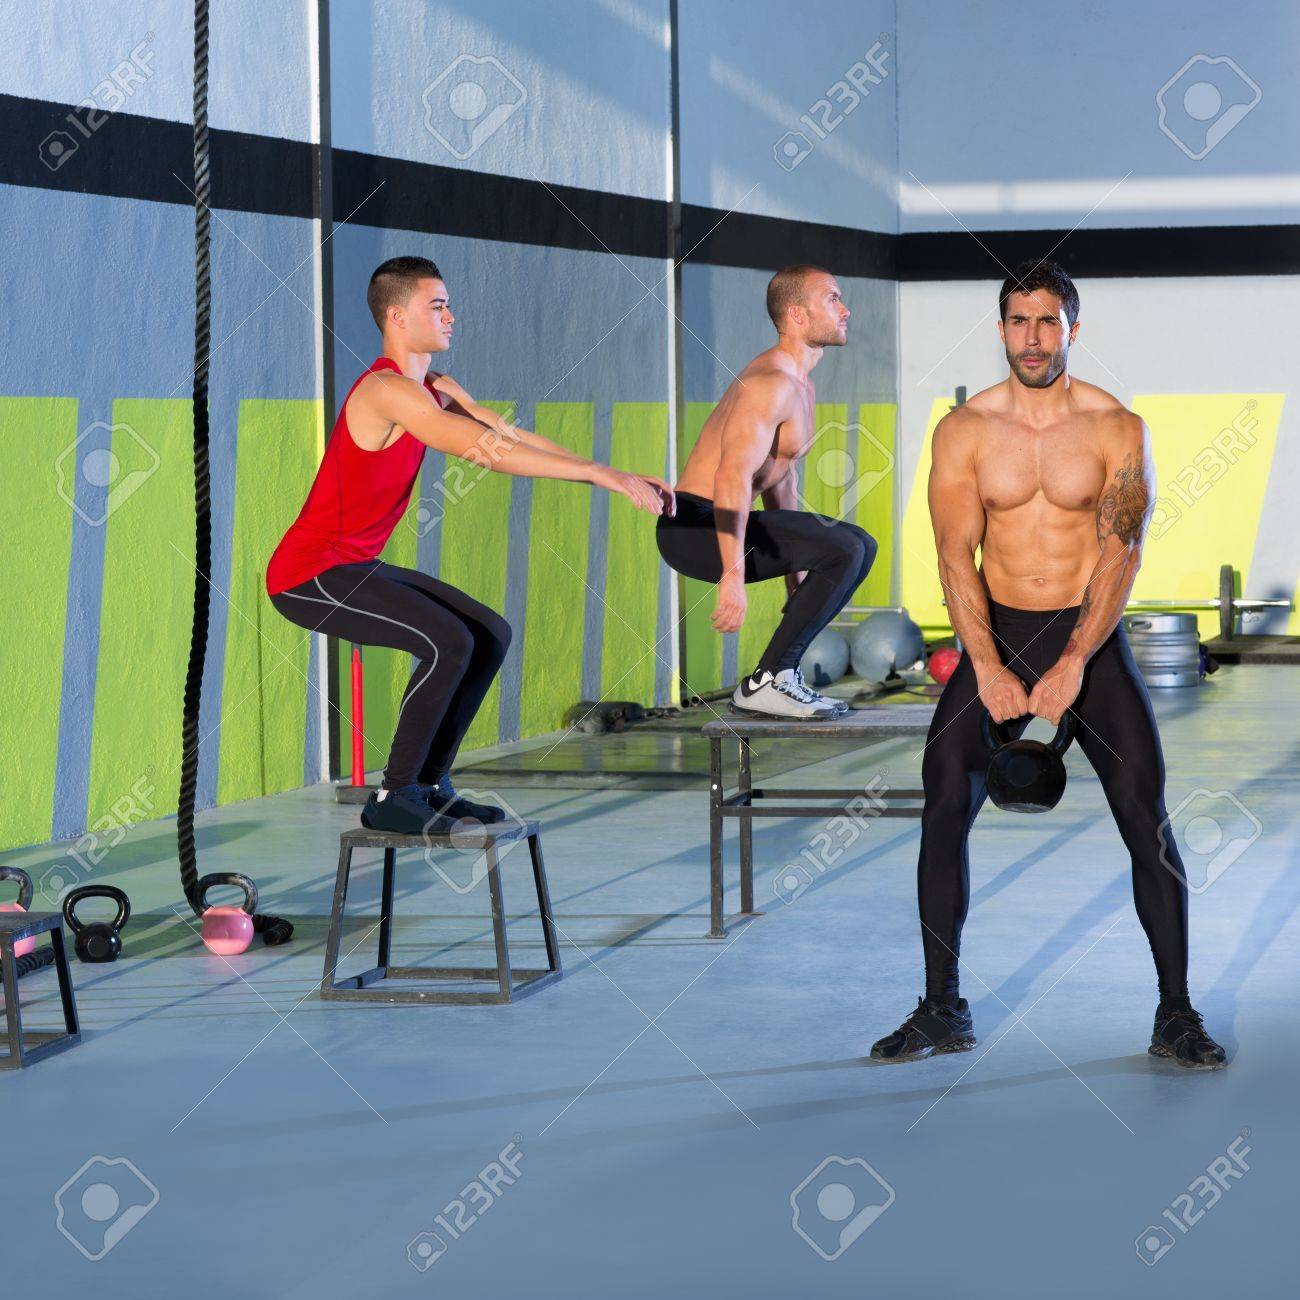 Crossfit box jump people group and kettlebell man at gym Standard-Bild - 17050620